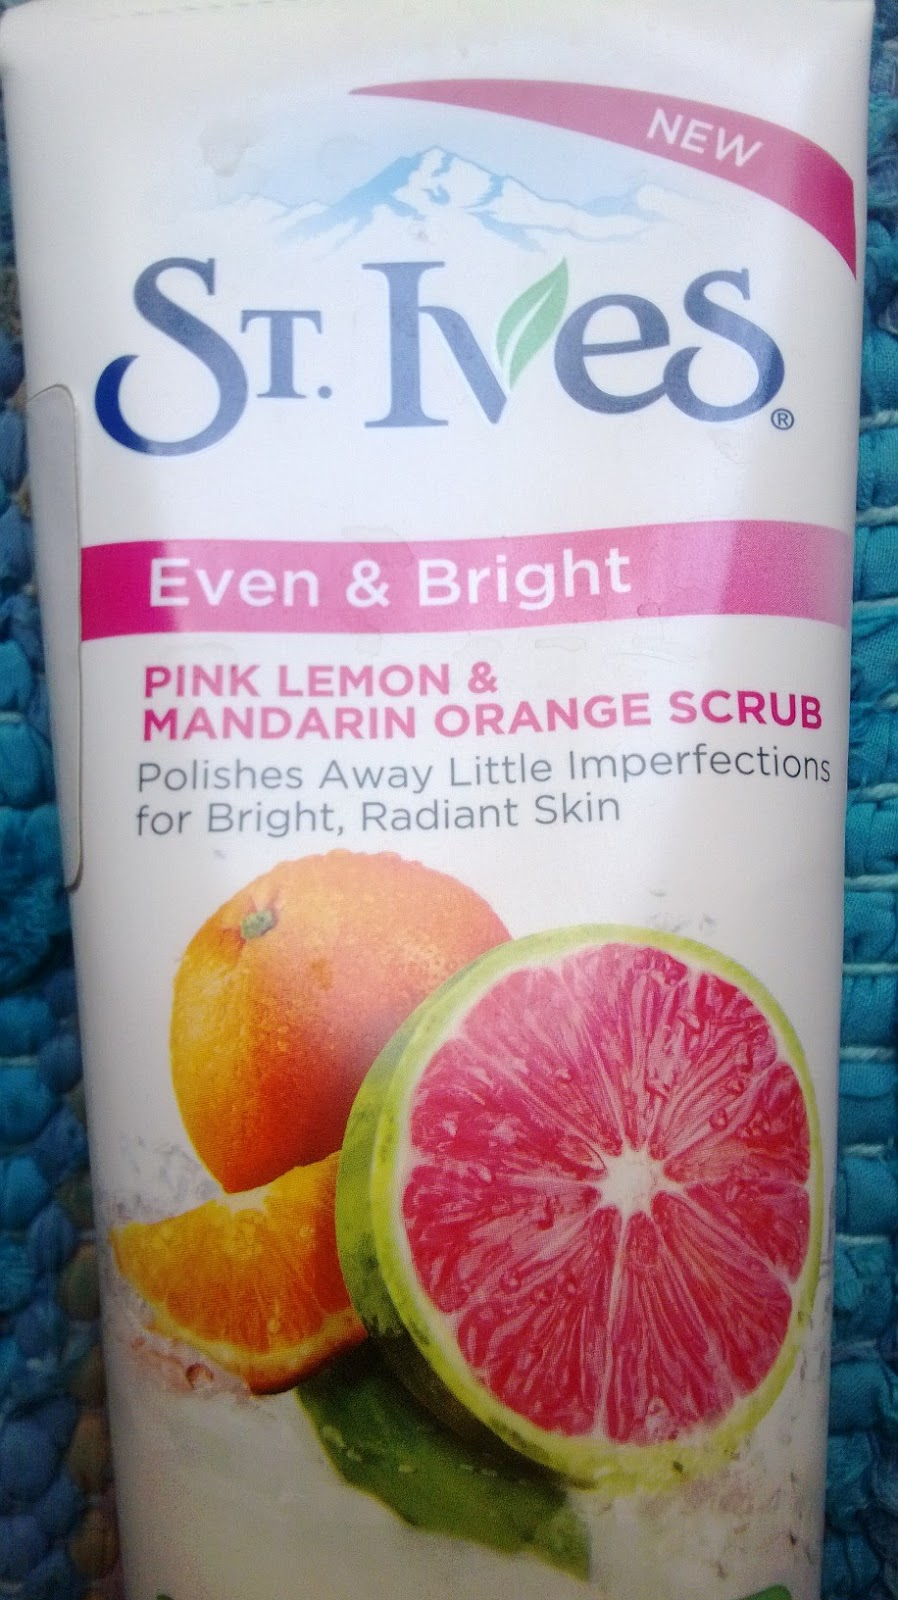 St. Ives Even and Bright Pink Lemon and Mandarin Orange Scrub Review